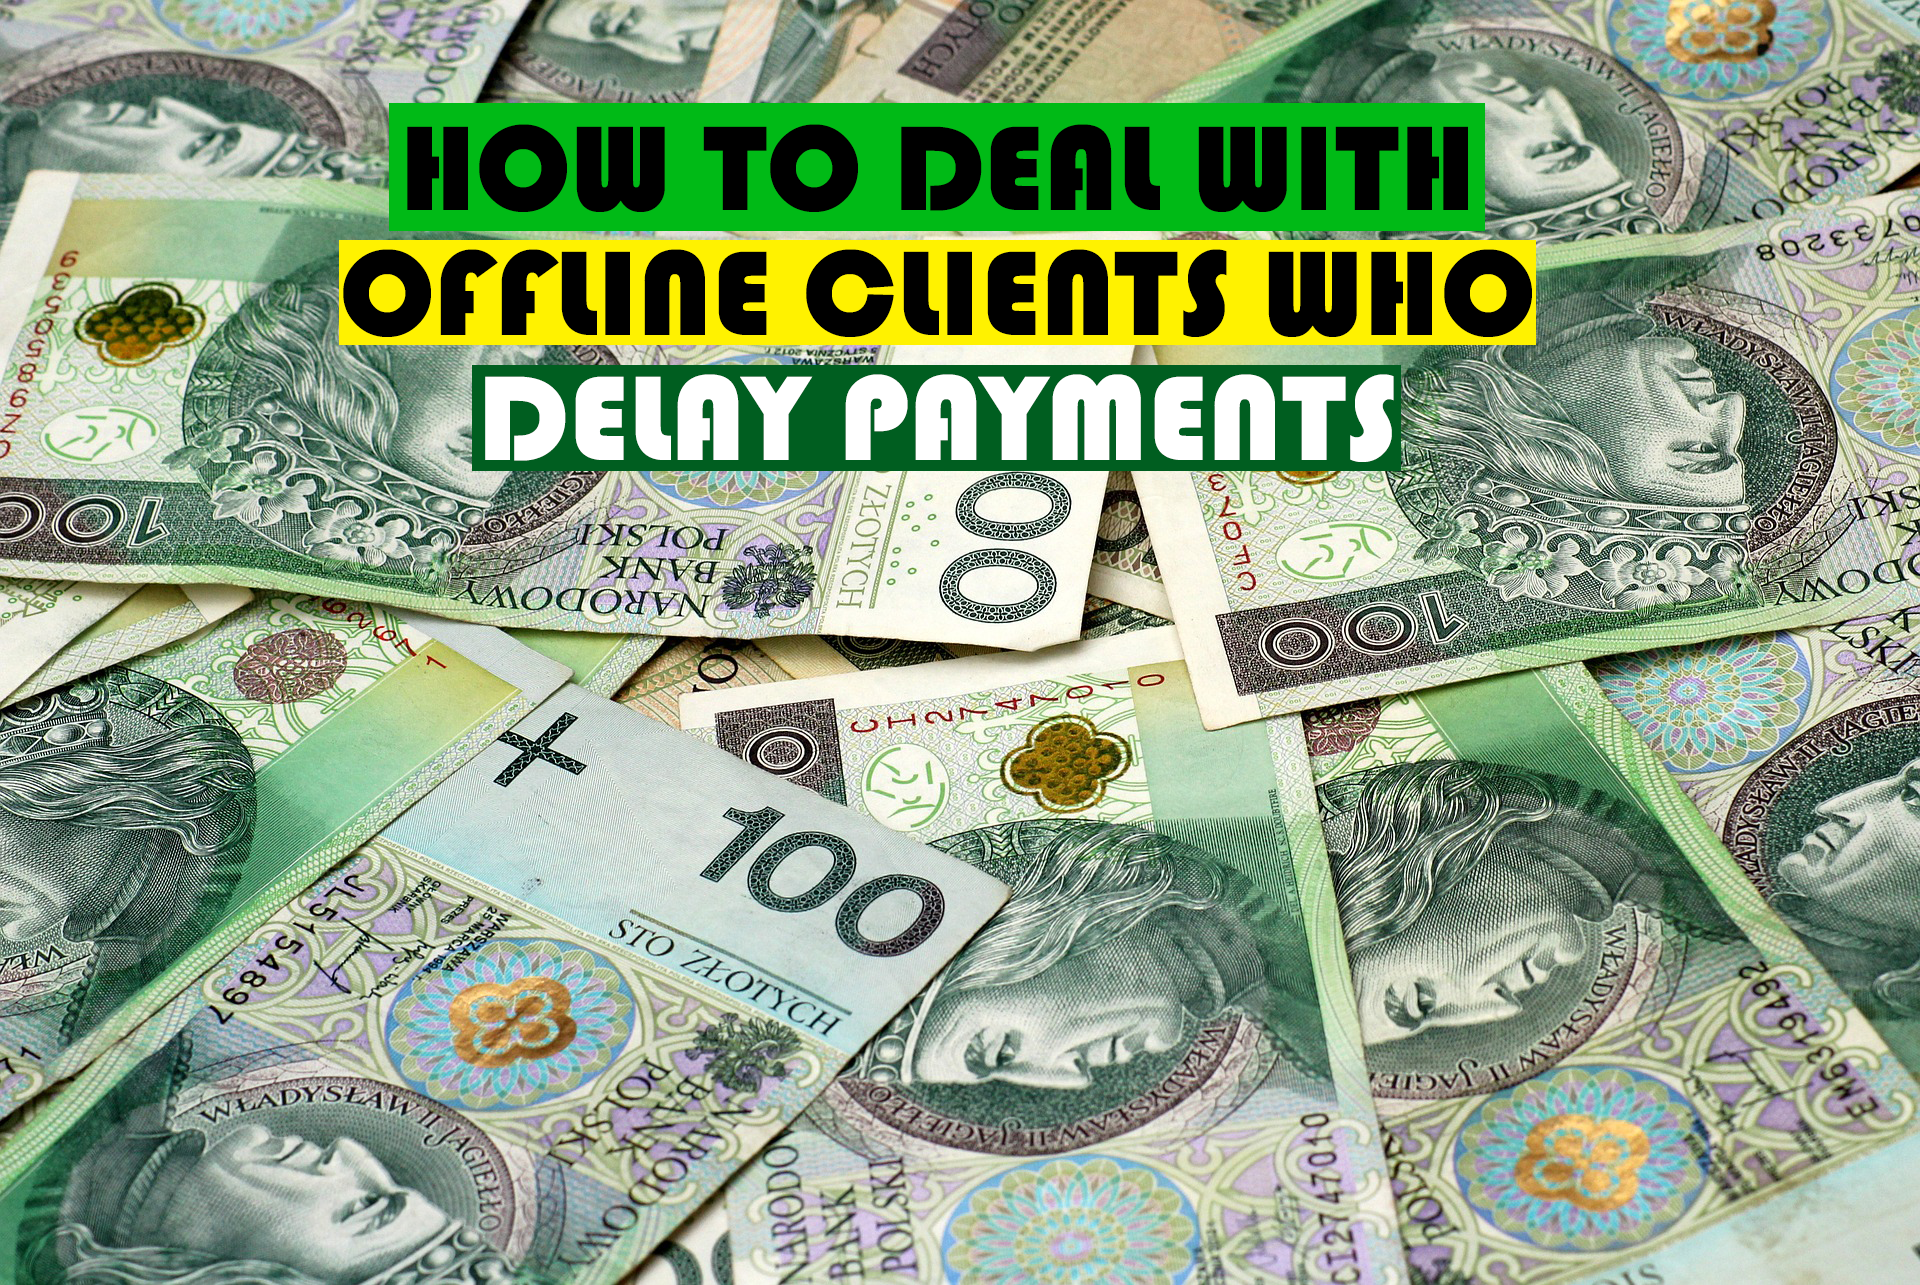 How to Deal With Offline Clients Who go For Months or Years Without Paying